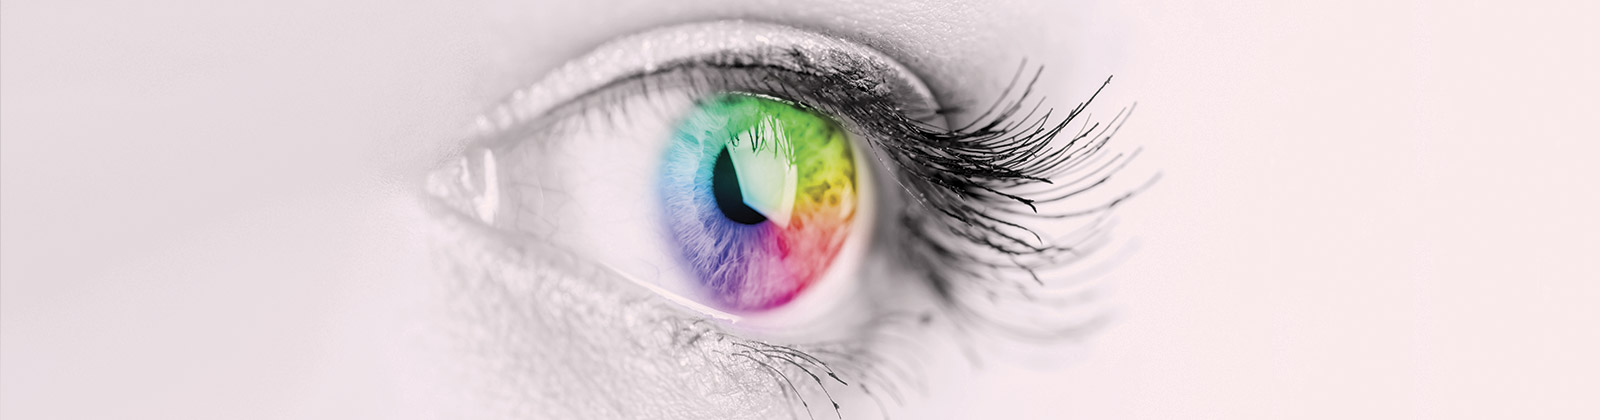 Eye with rainbow